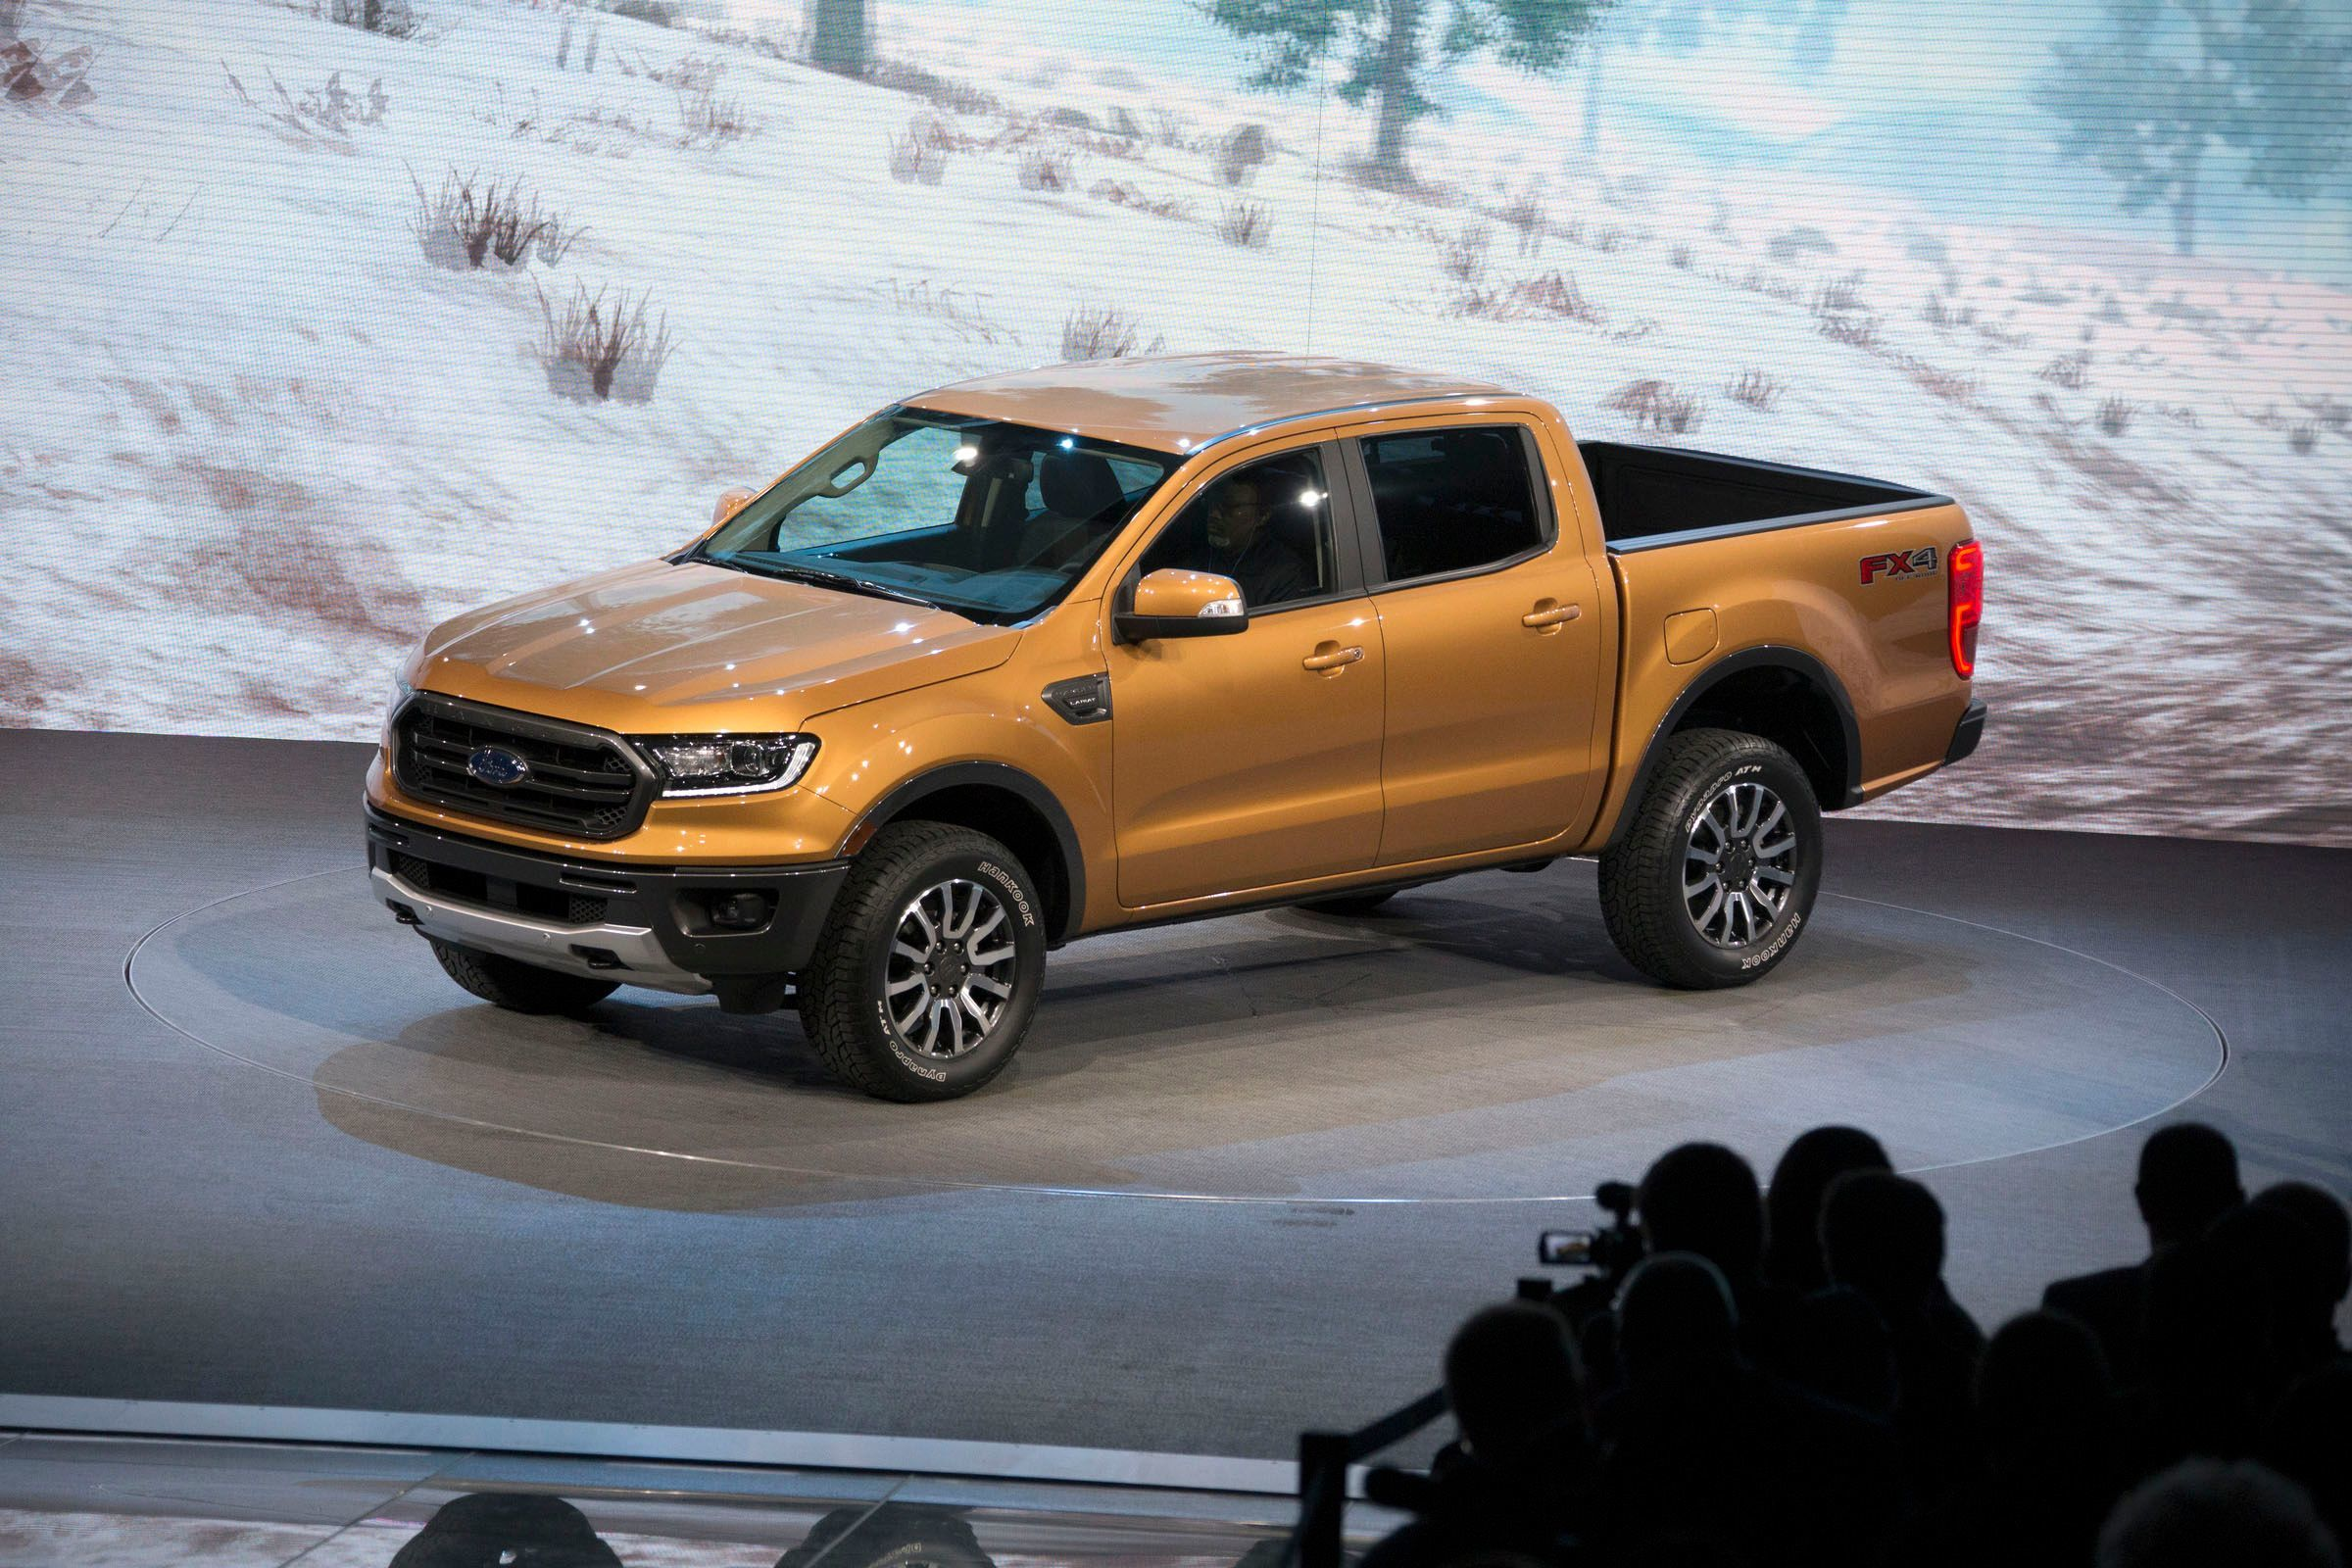 Toyota Tacoma Dominates But Ford Ranger Jeep Scrambler Joining Party